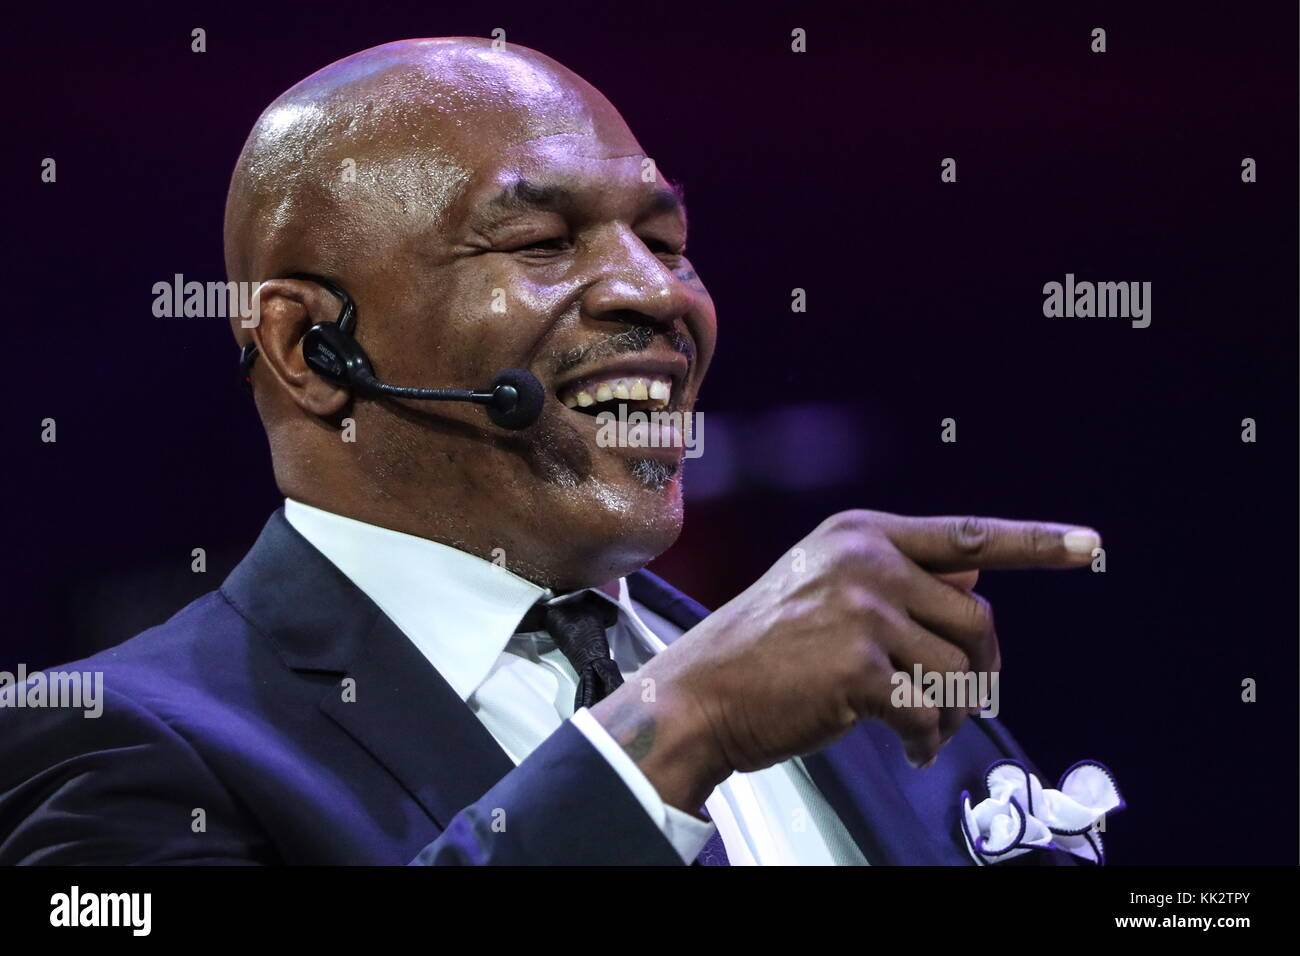 Moscow, Russia. 28th Nov, 2017. American former professional boxer Mike Tyson at the Synergy Global Forum at Moscow's - Stock Image